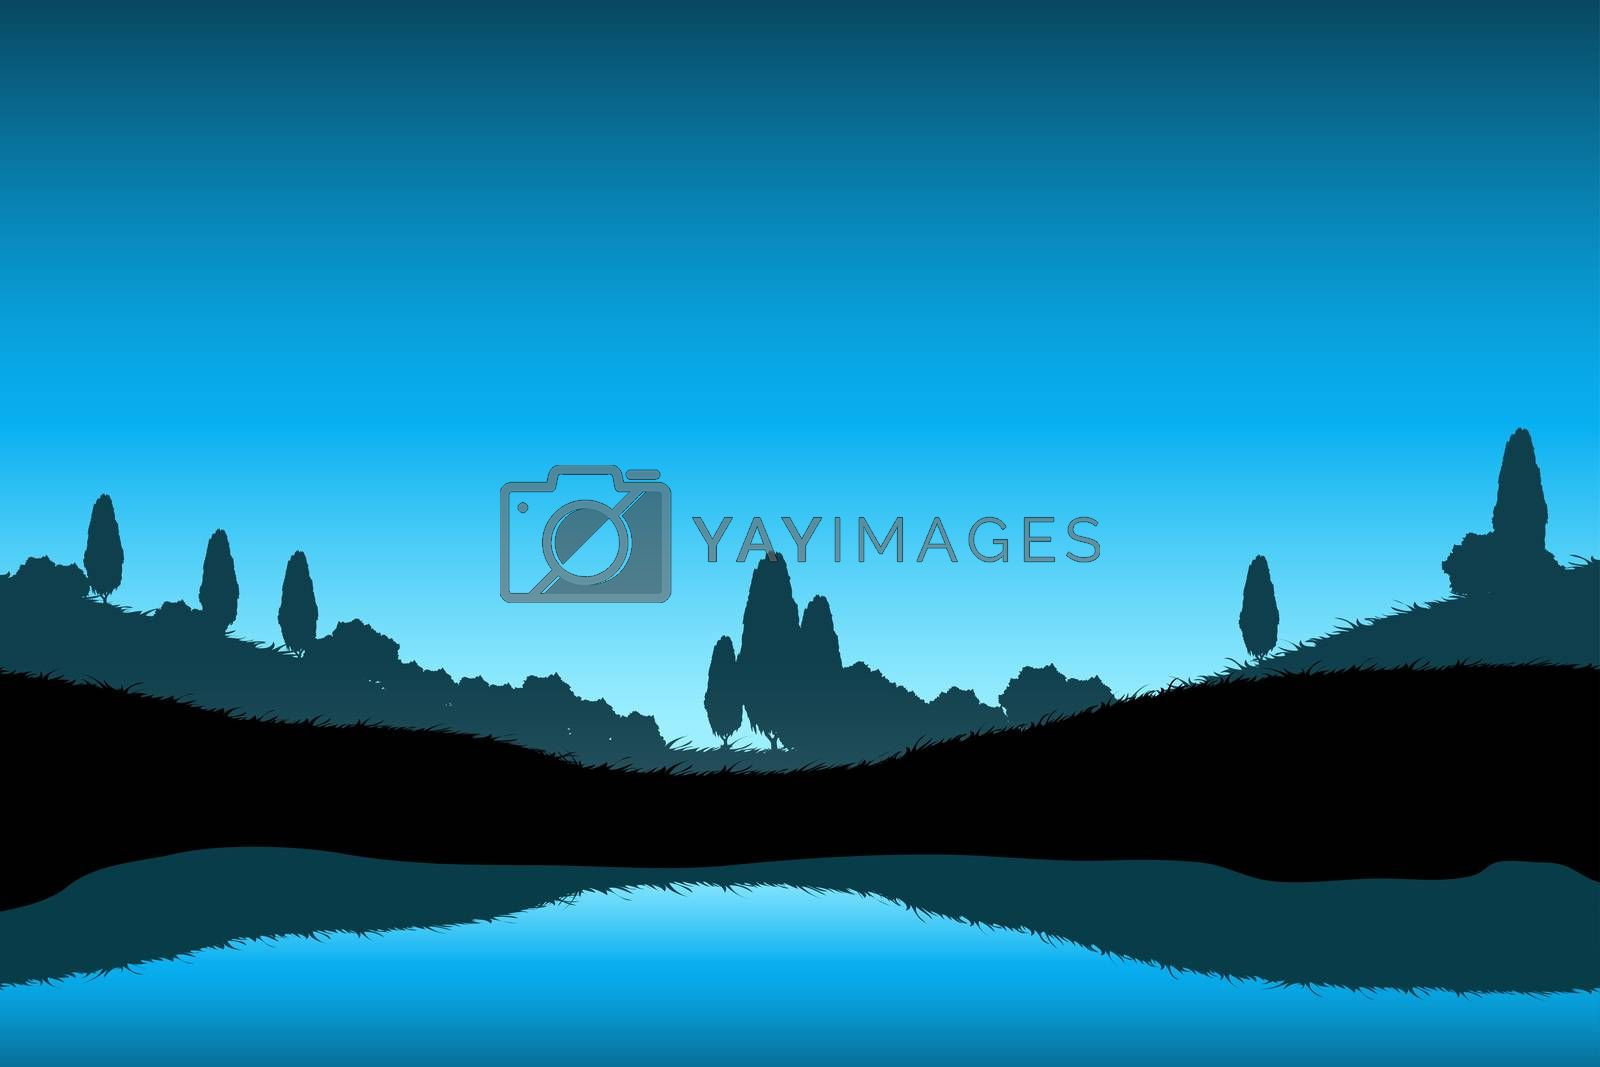 Nature Landscape with Trees Silhouette by WaD